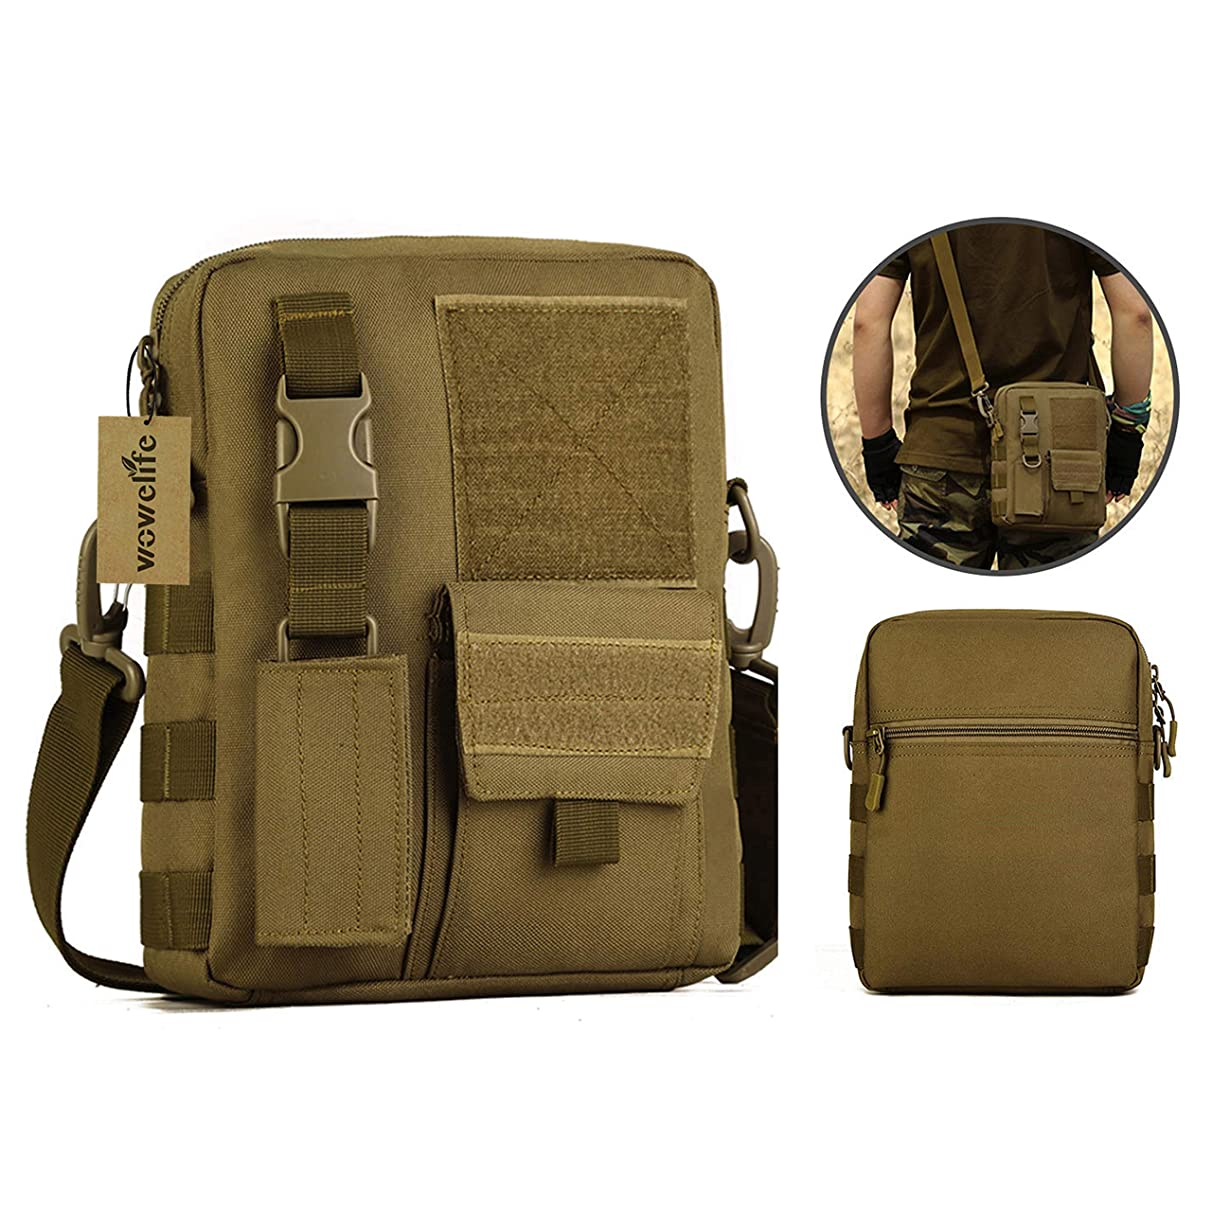 Wowelife Small Canvas Messenger Bag Small Tactical Bag Crossbody Casual Weekend Pack with Shoulder Strap for Hiking and Traveling